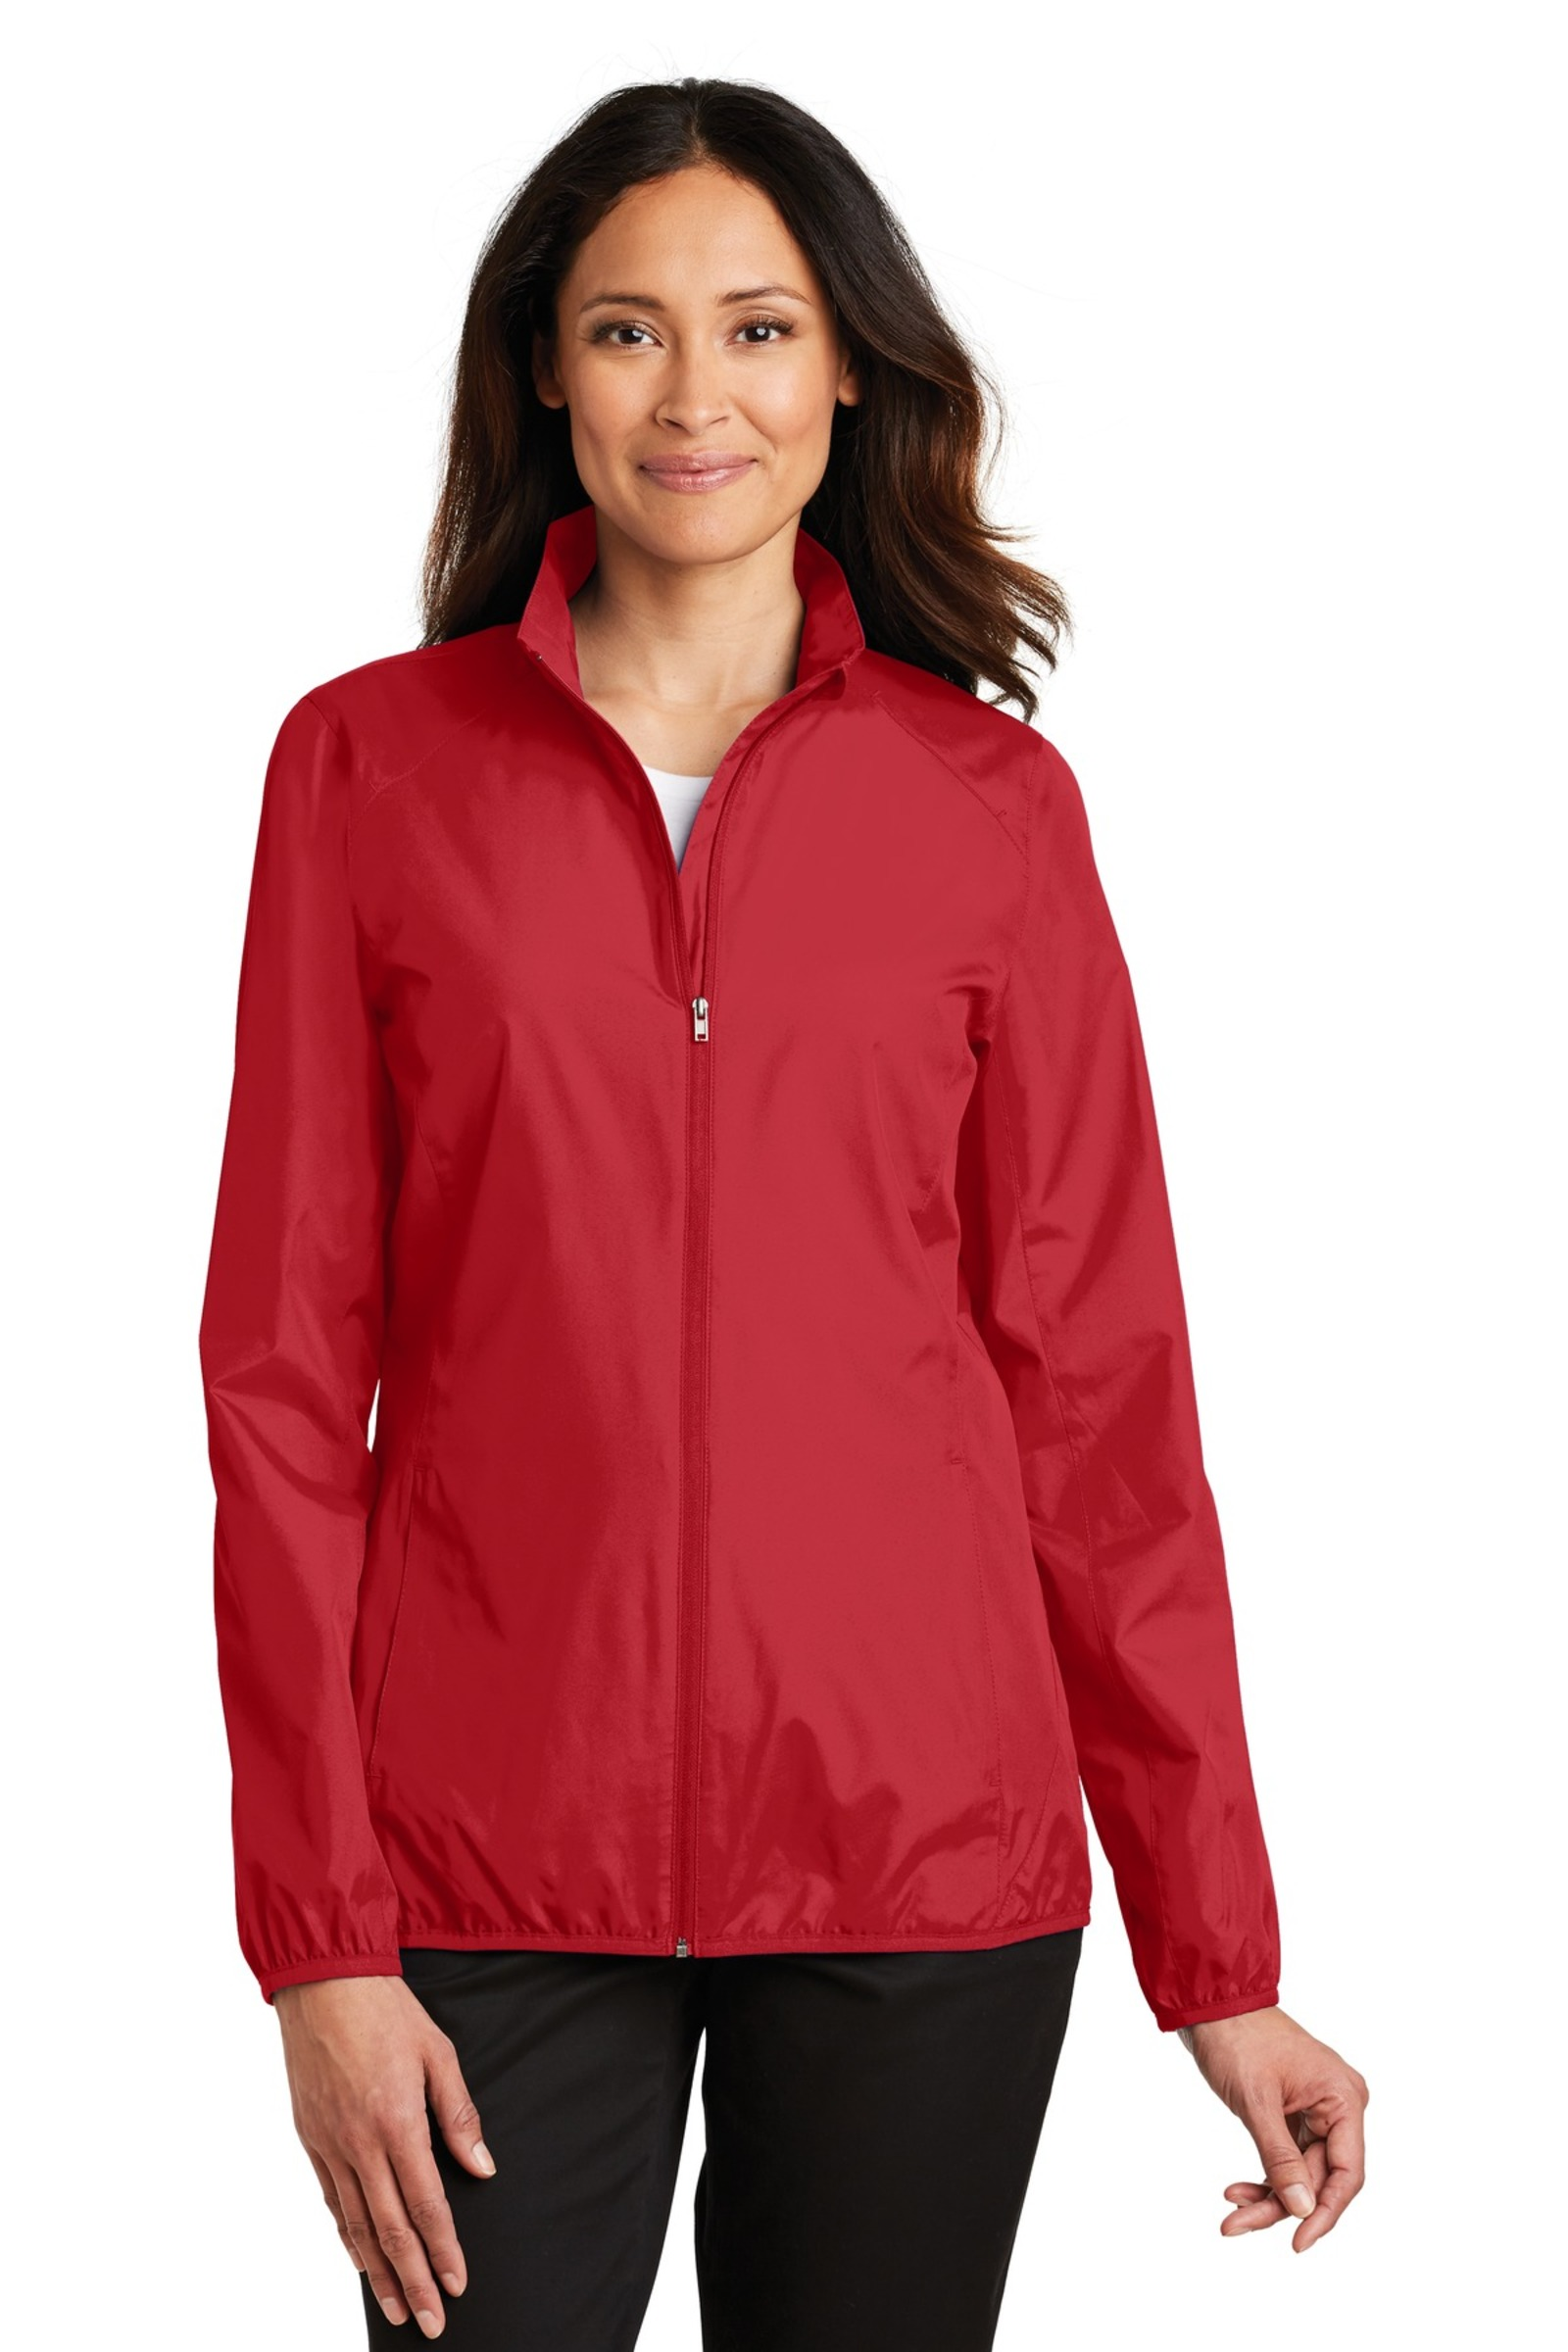 Port Authority  Embroidered Women's Zephyr Full-Zip Jacket